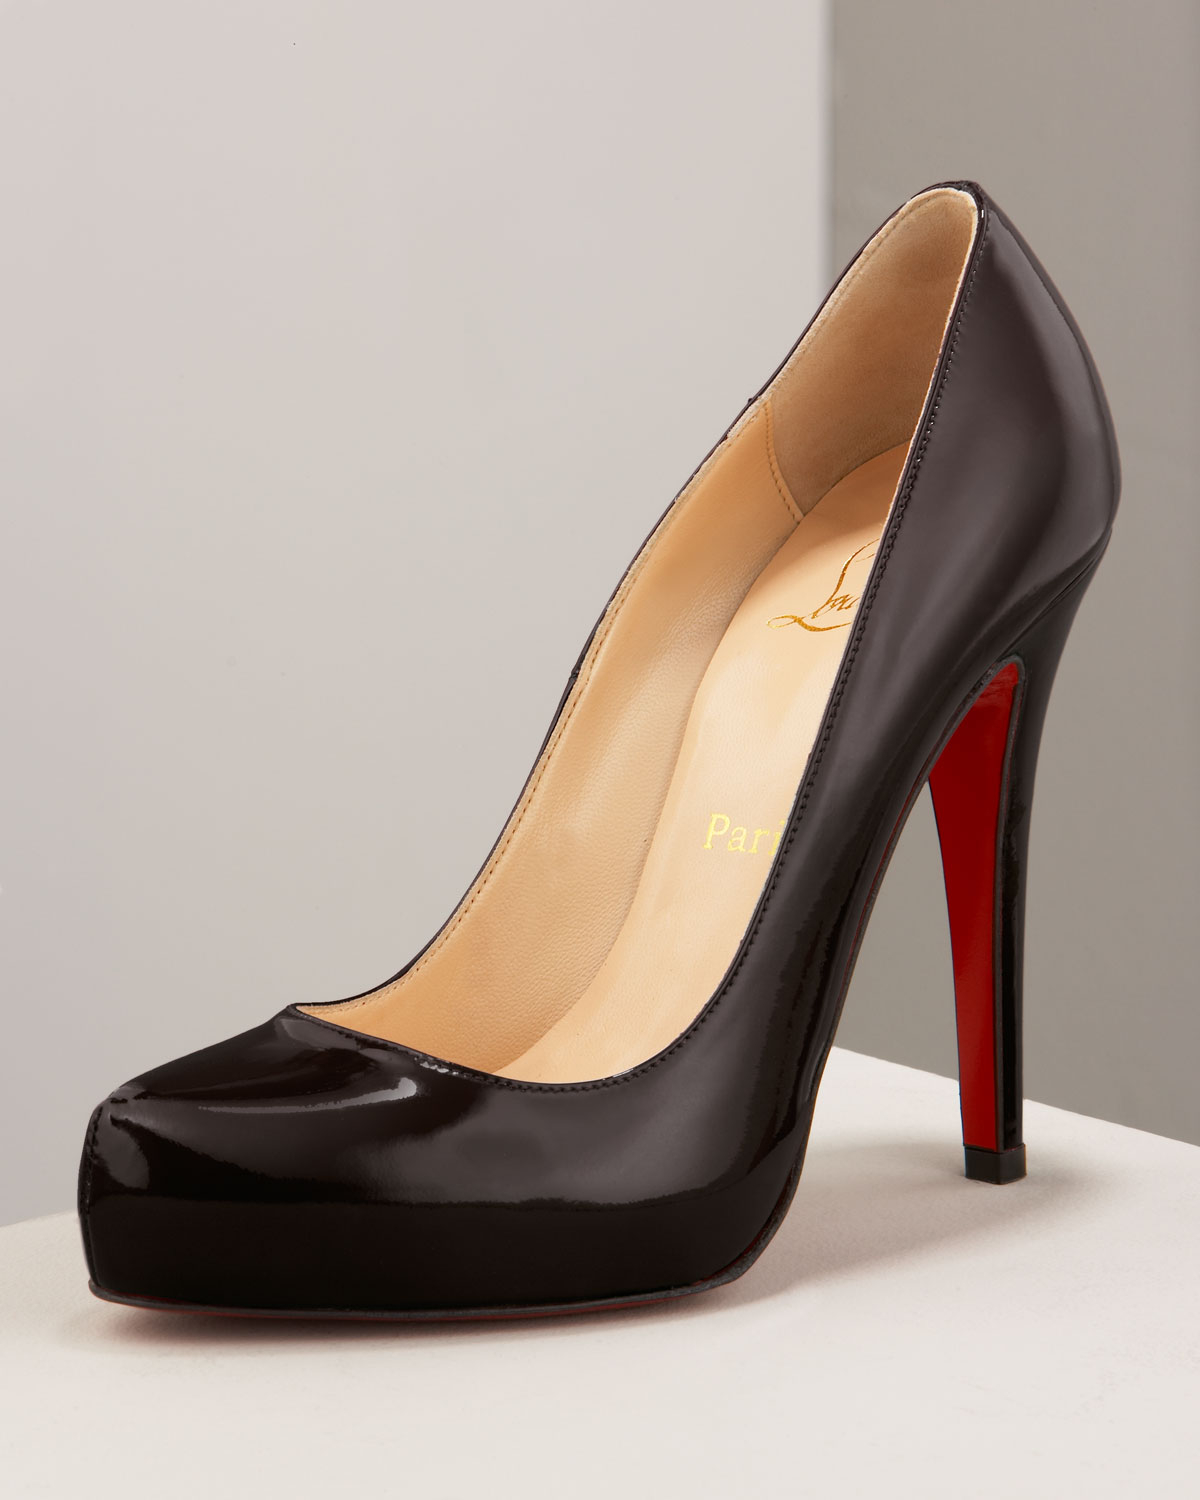 replica shoes christian louboutin - christian-louboutin-black-rolando-hidden-platform-pump-patent-leather--product-1-12091723-0-433323403-normal.jpeg